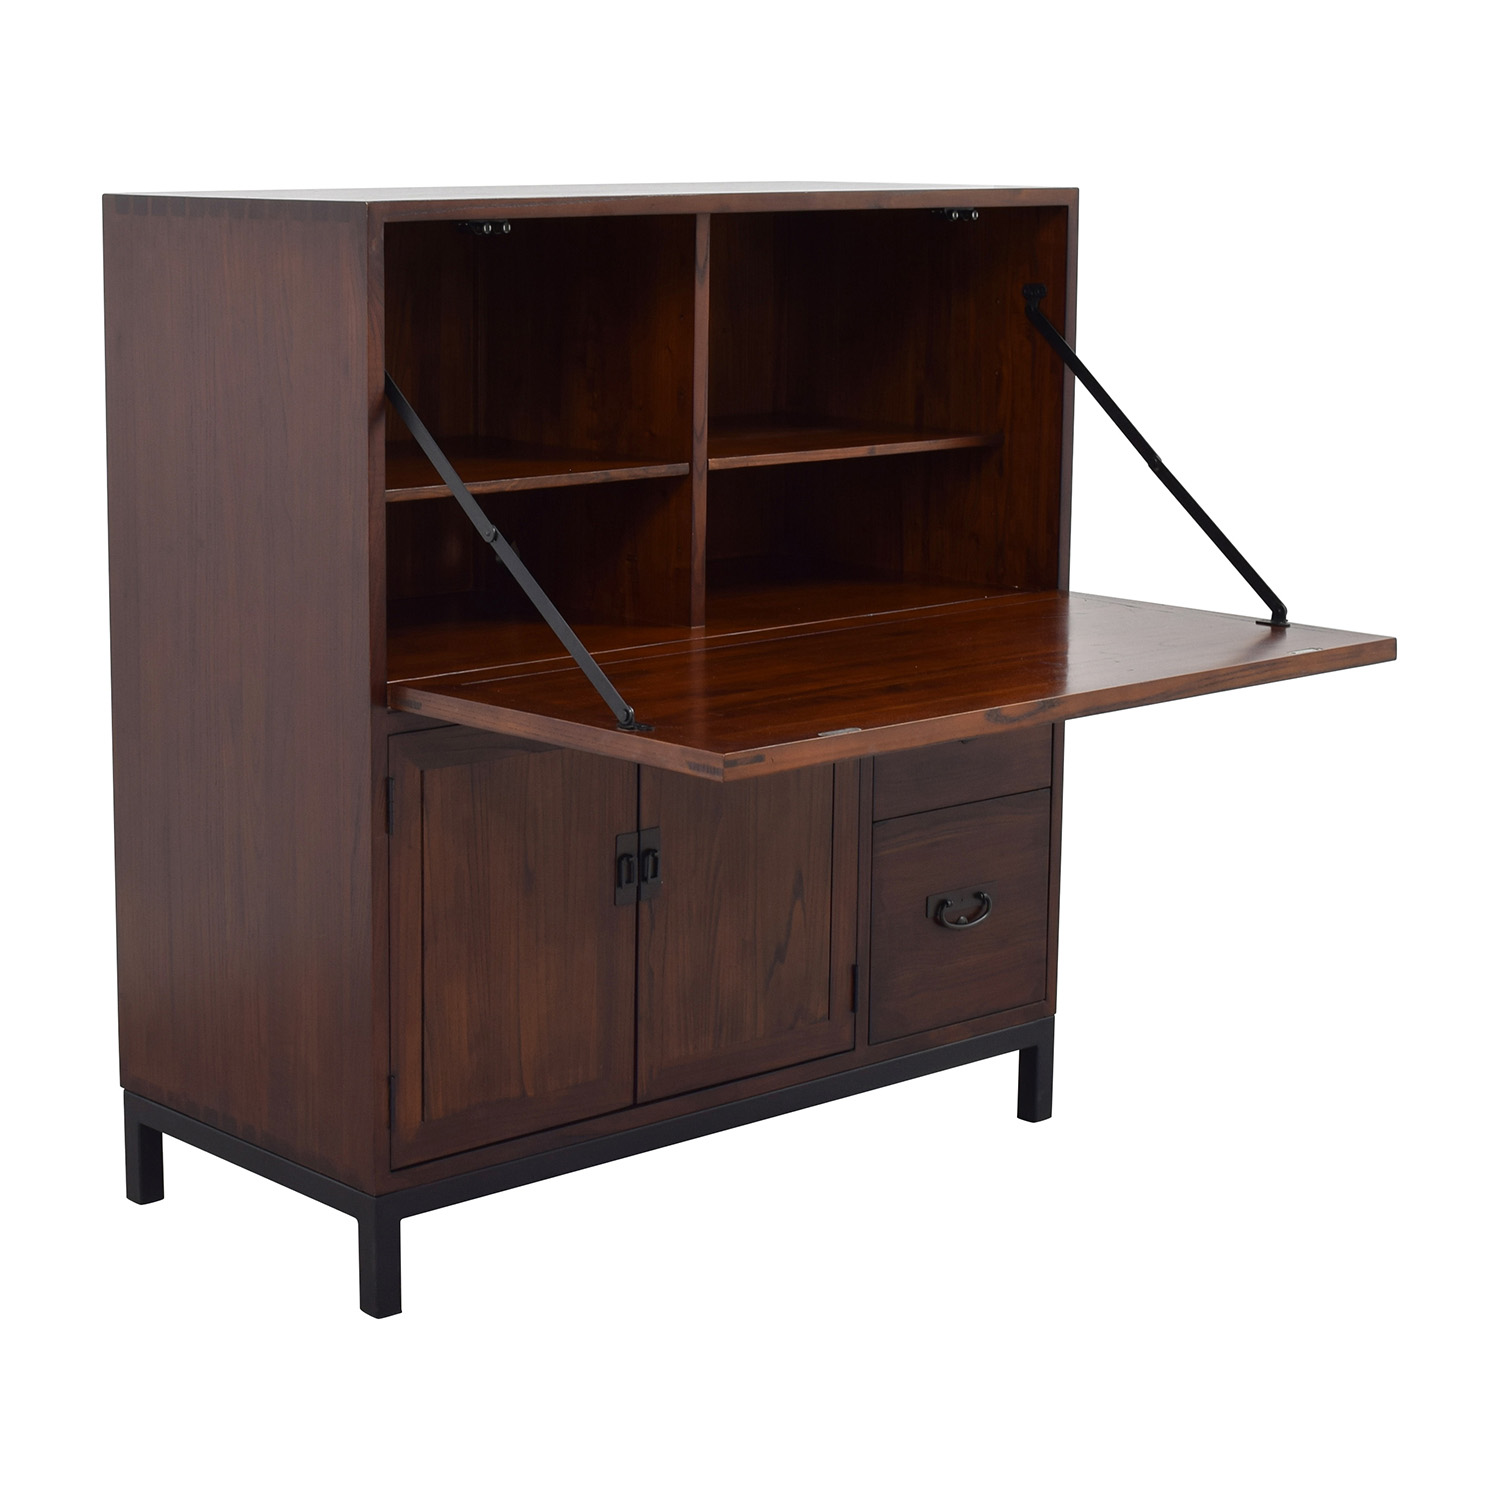 Charmant ... Room U0026 Board Room U0026 Board Office Armoire Discount ...